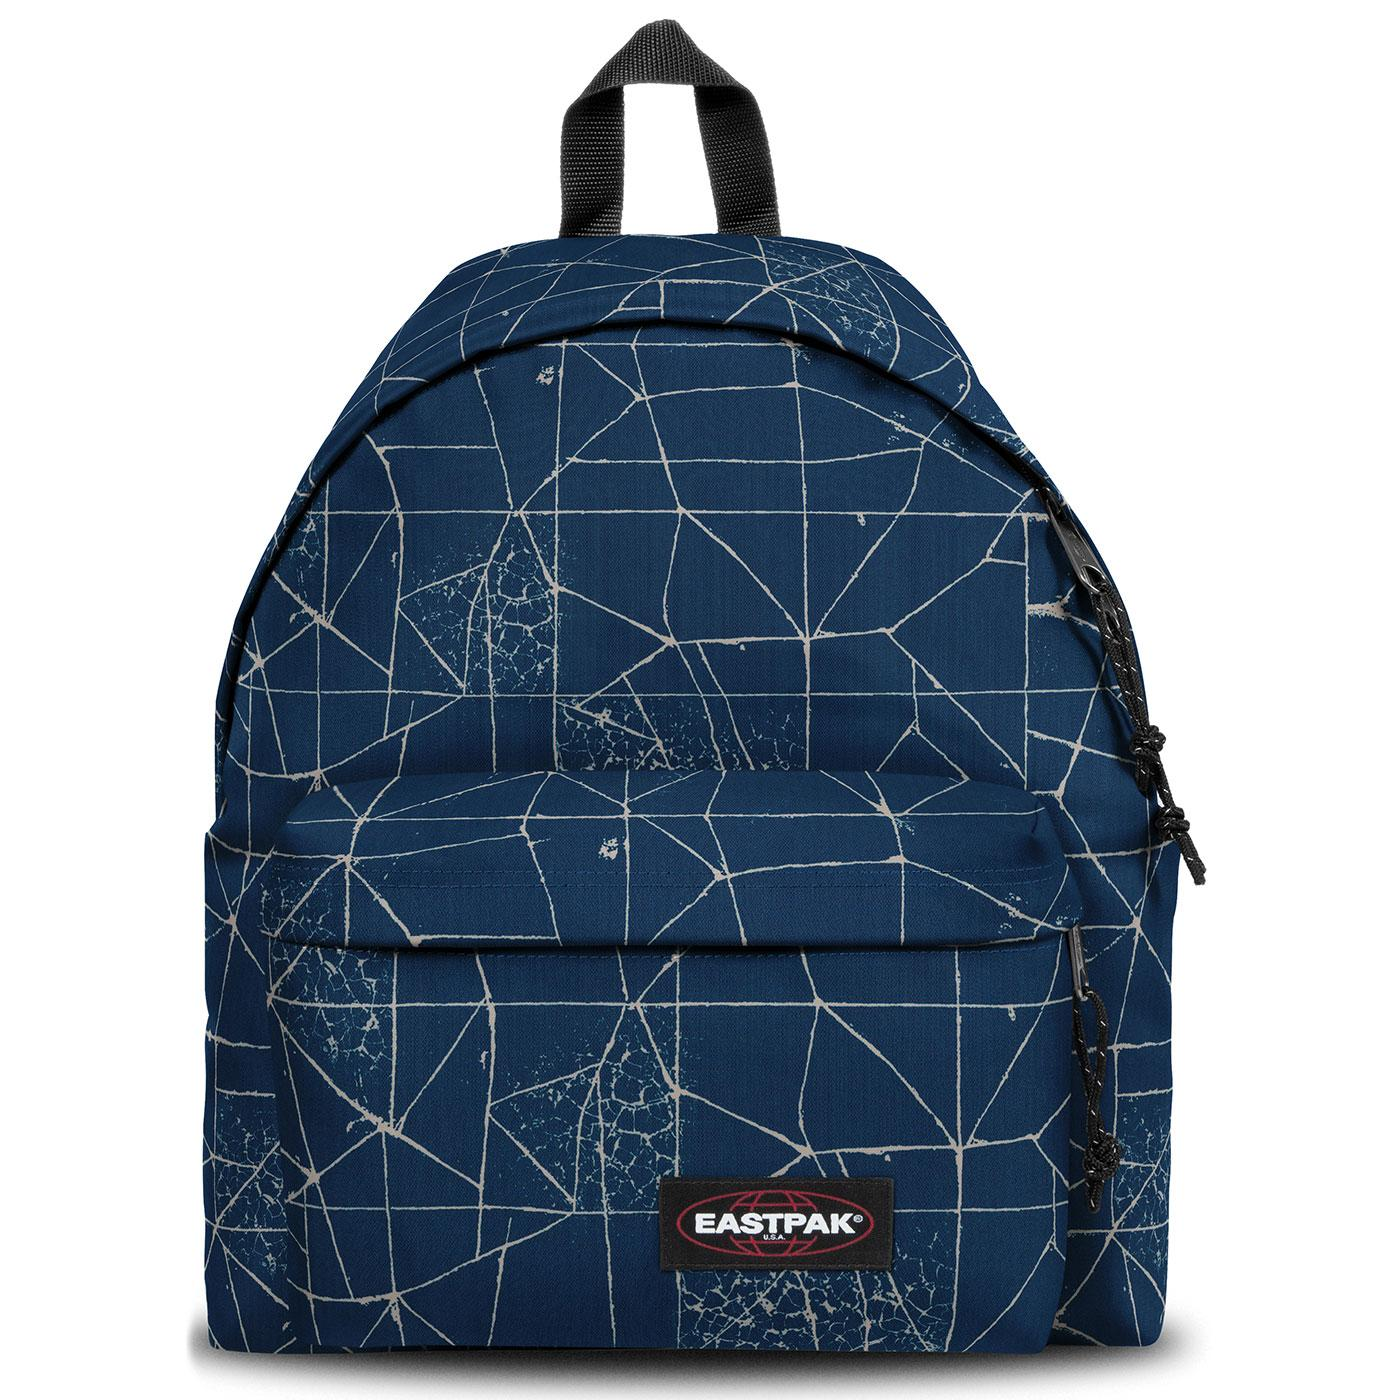 Padded Pak'r EASTPAK Retro Backpack - Cracked Blue